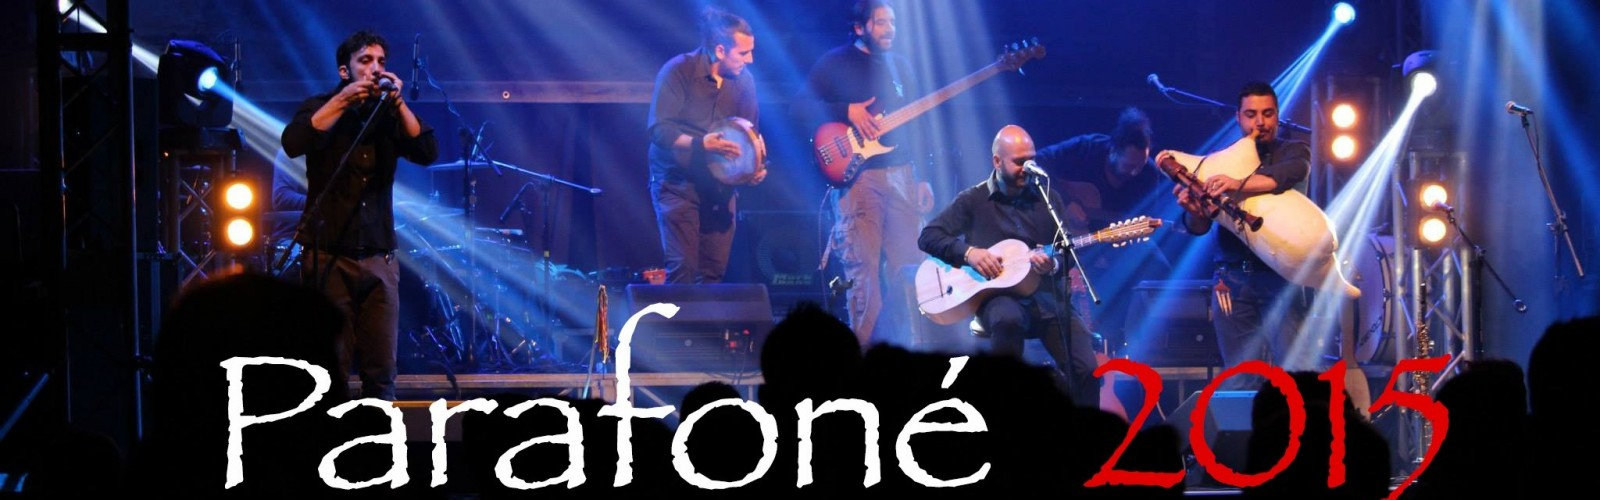 http://www.parafone.it/wp-content/uploads/2015/08/banner-sito4-e1439420375253-1600x500.jpg